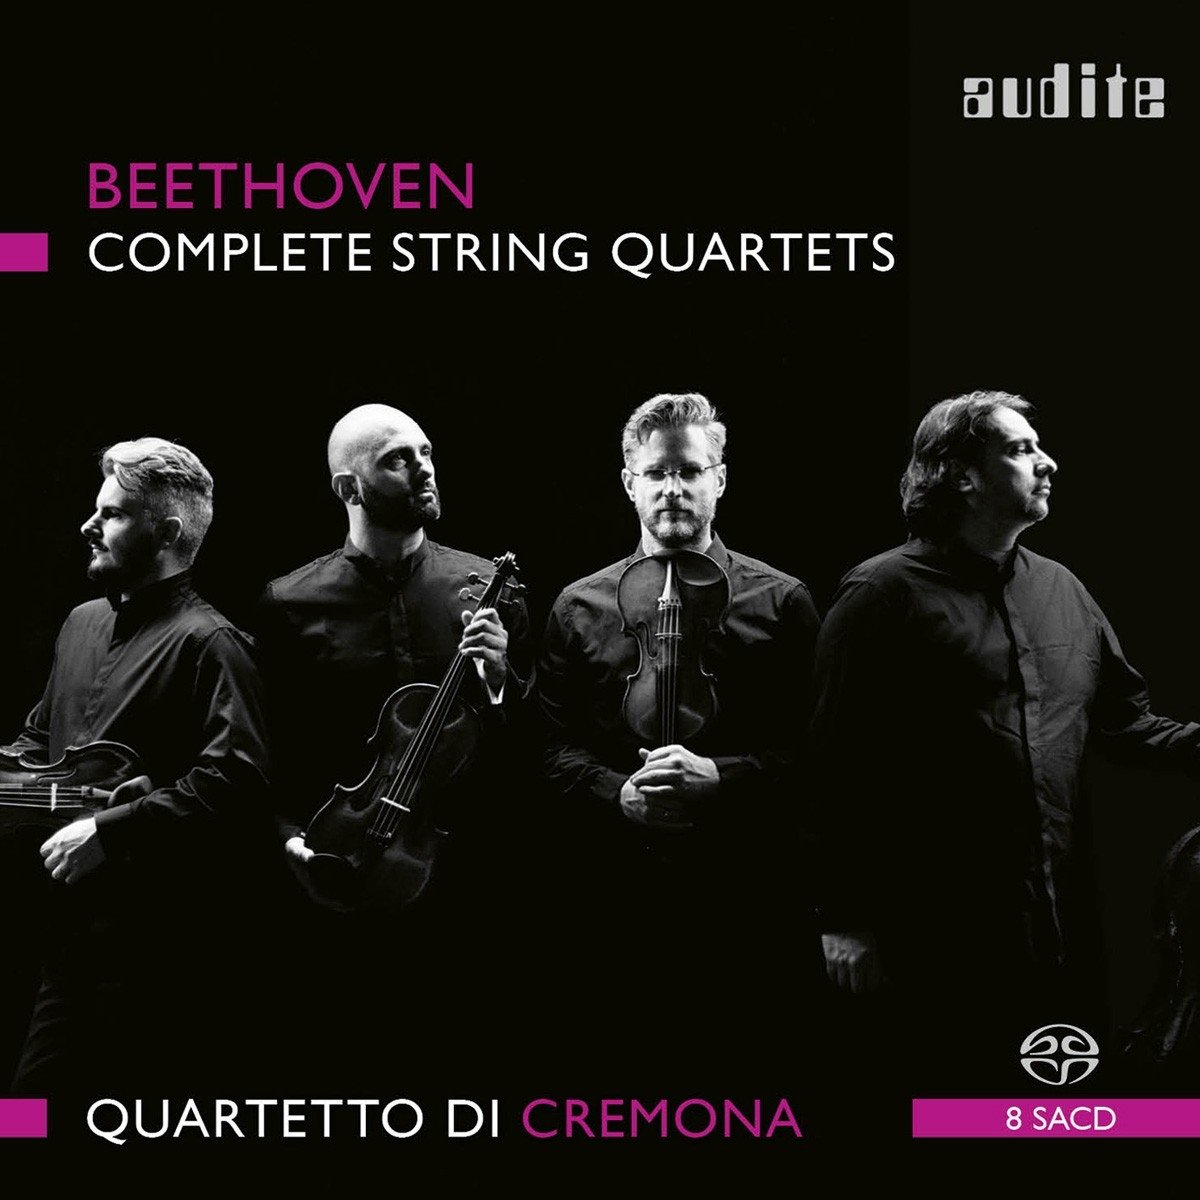 SACD : Lawrence Dutton - Complete String Quartets (Hybrid SACD, 8PC)